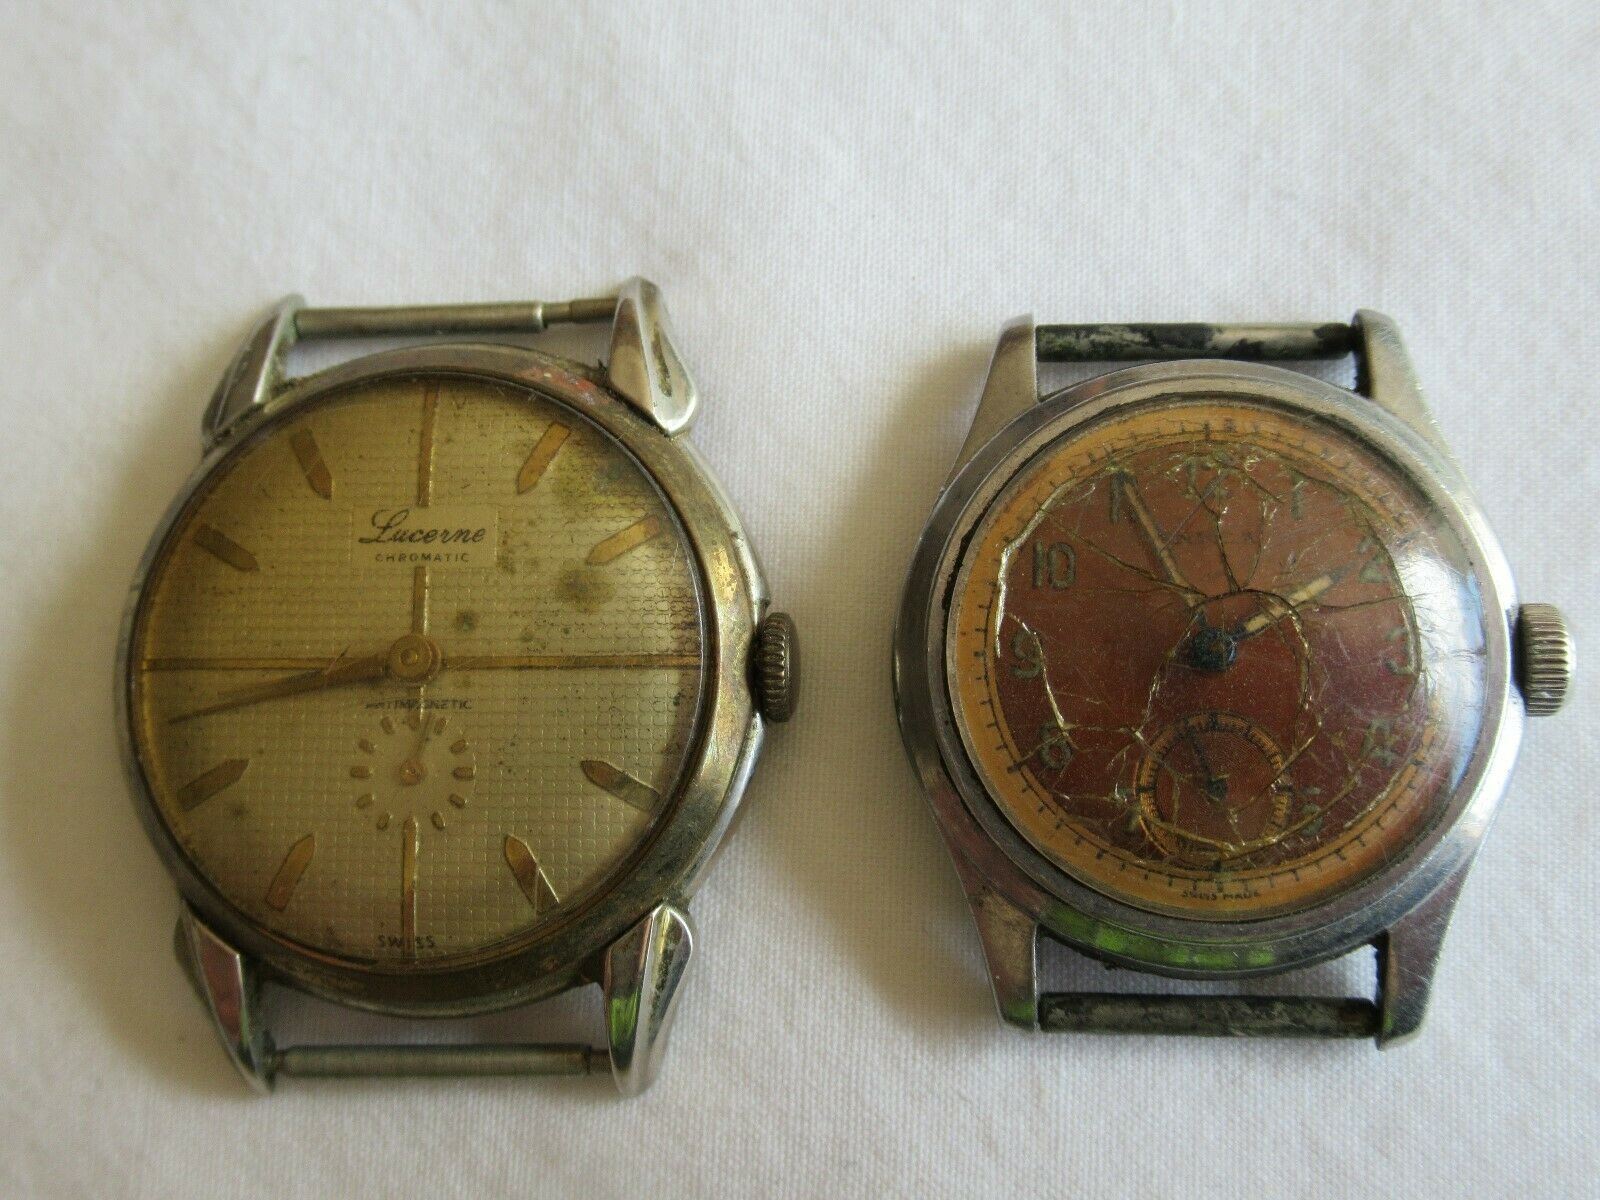 Vintage Watches Incabloc and Lucerne Swiss Made Broken Damaged Parts Only